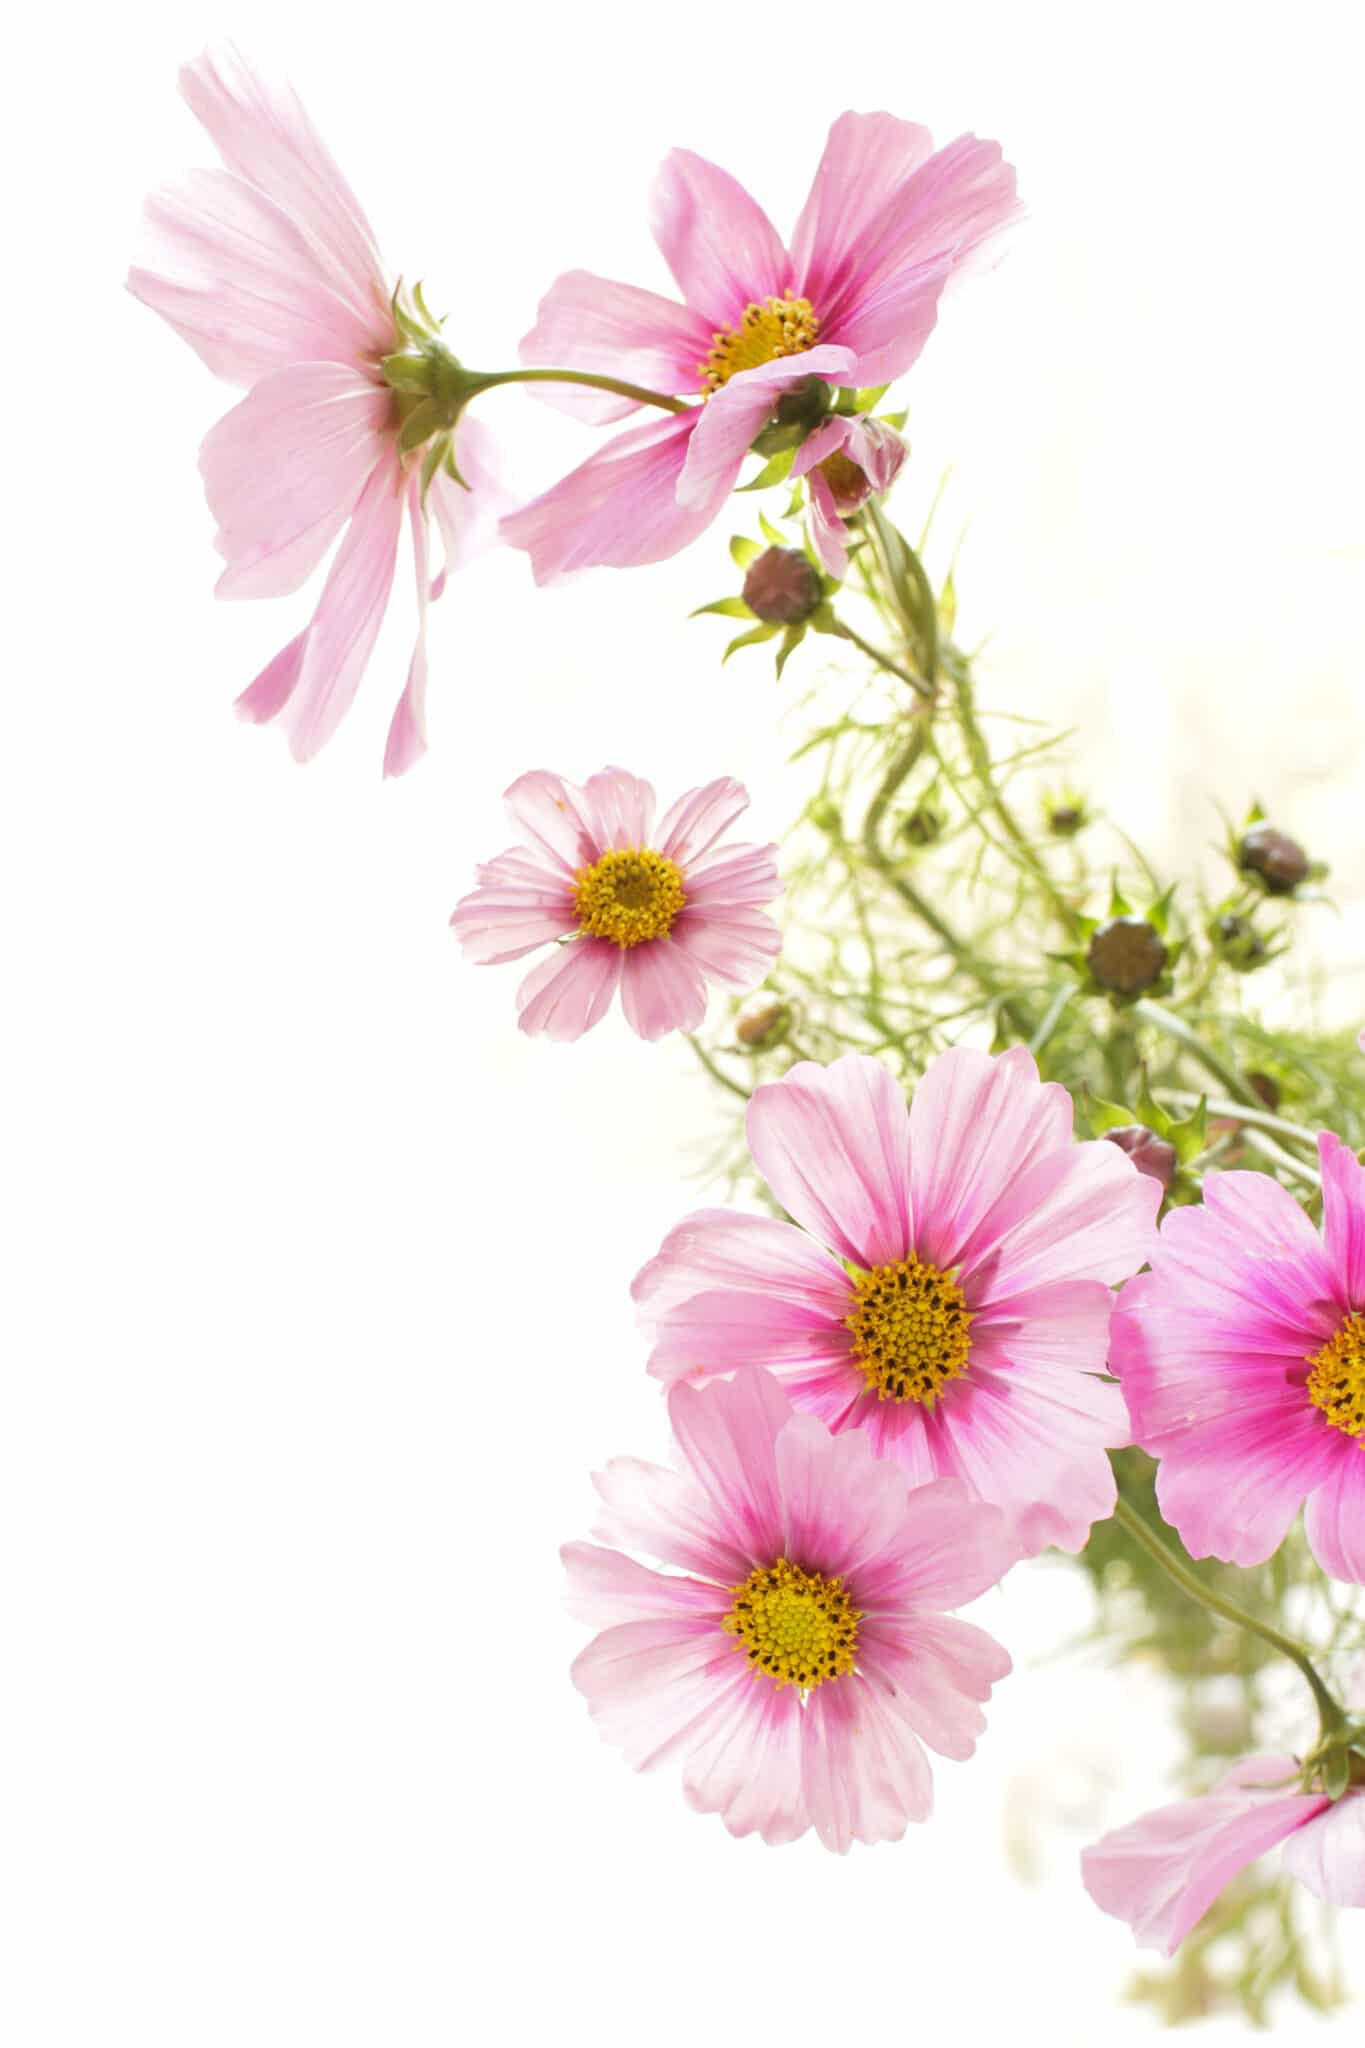 Lacy delicate pink petaled cosmos flowers against a bright white background.